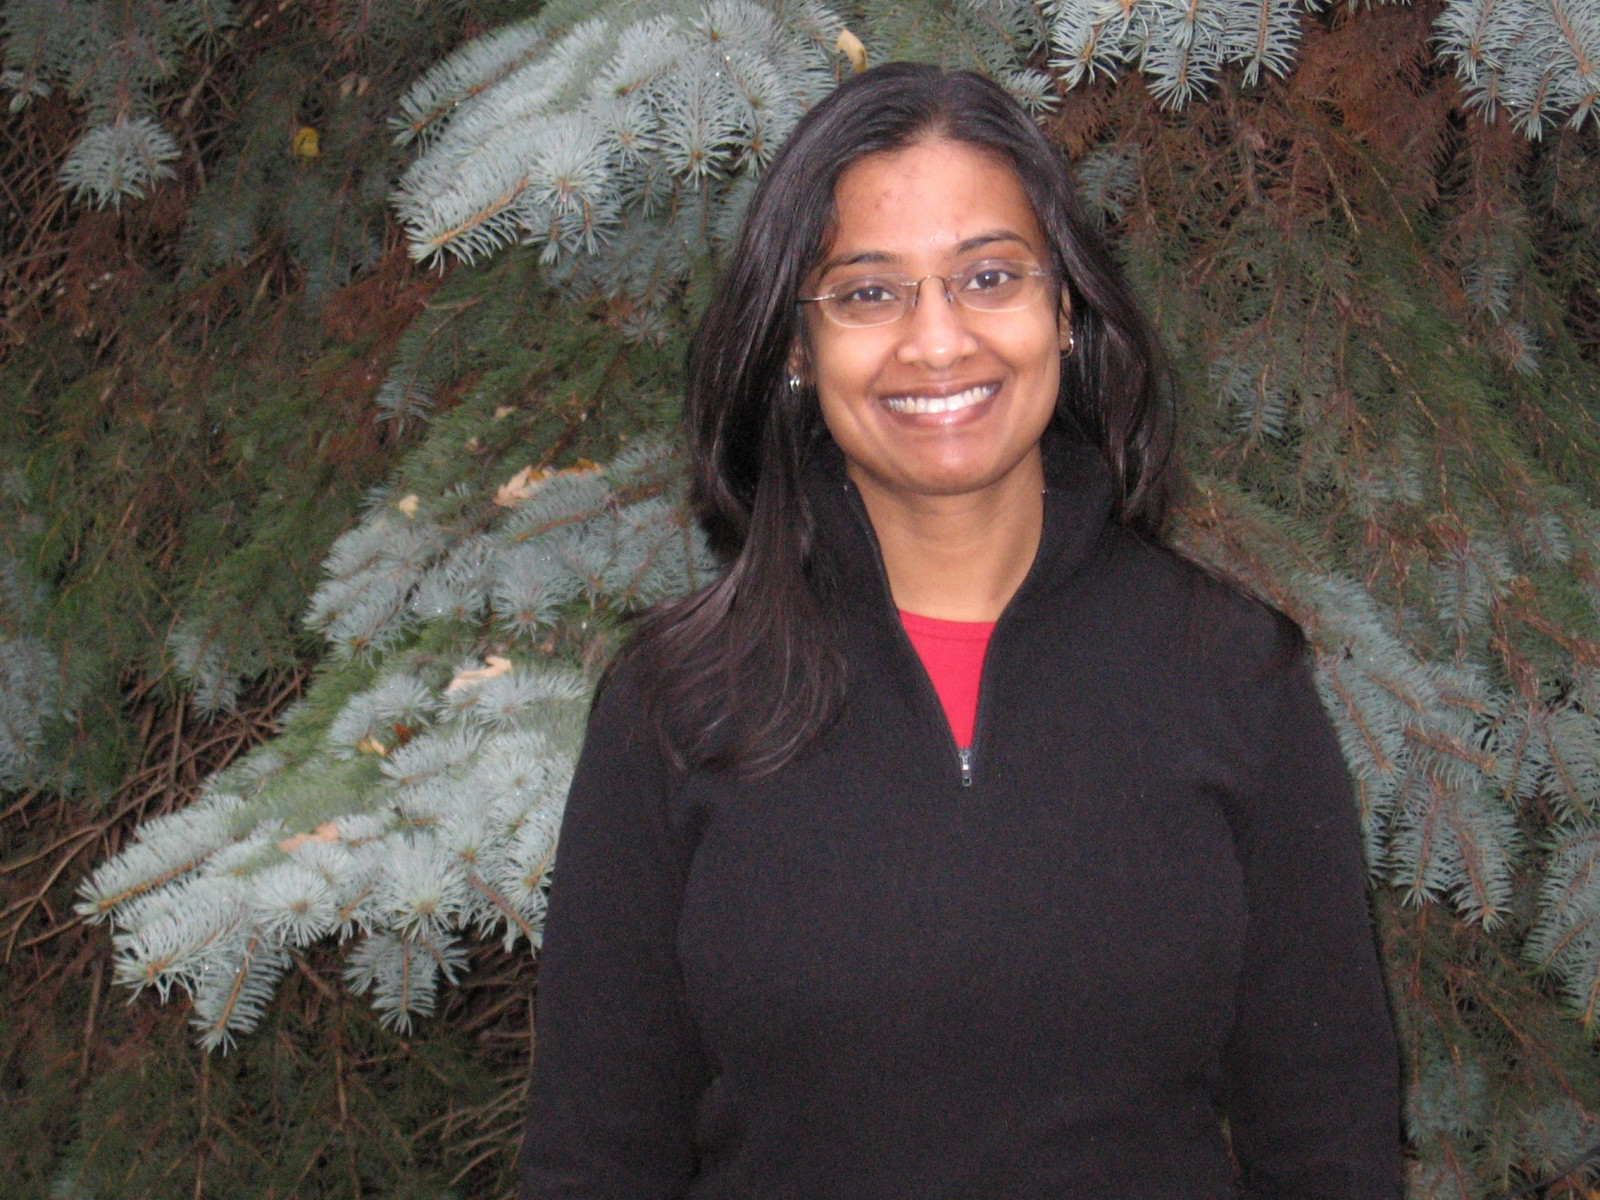 Dr. Anurani Persaud in front of pine trees.